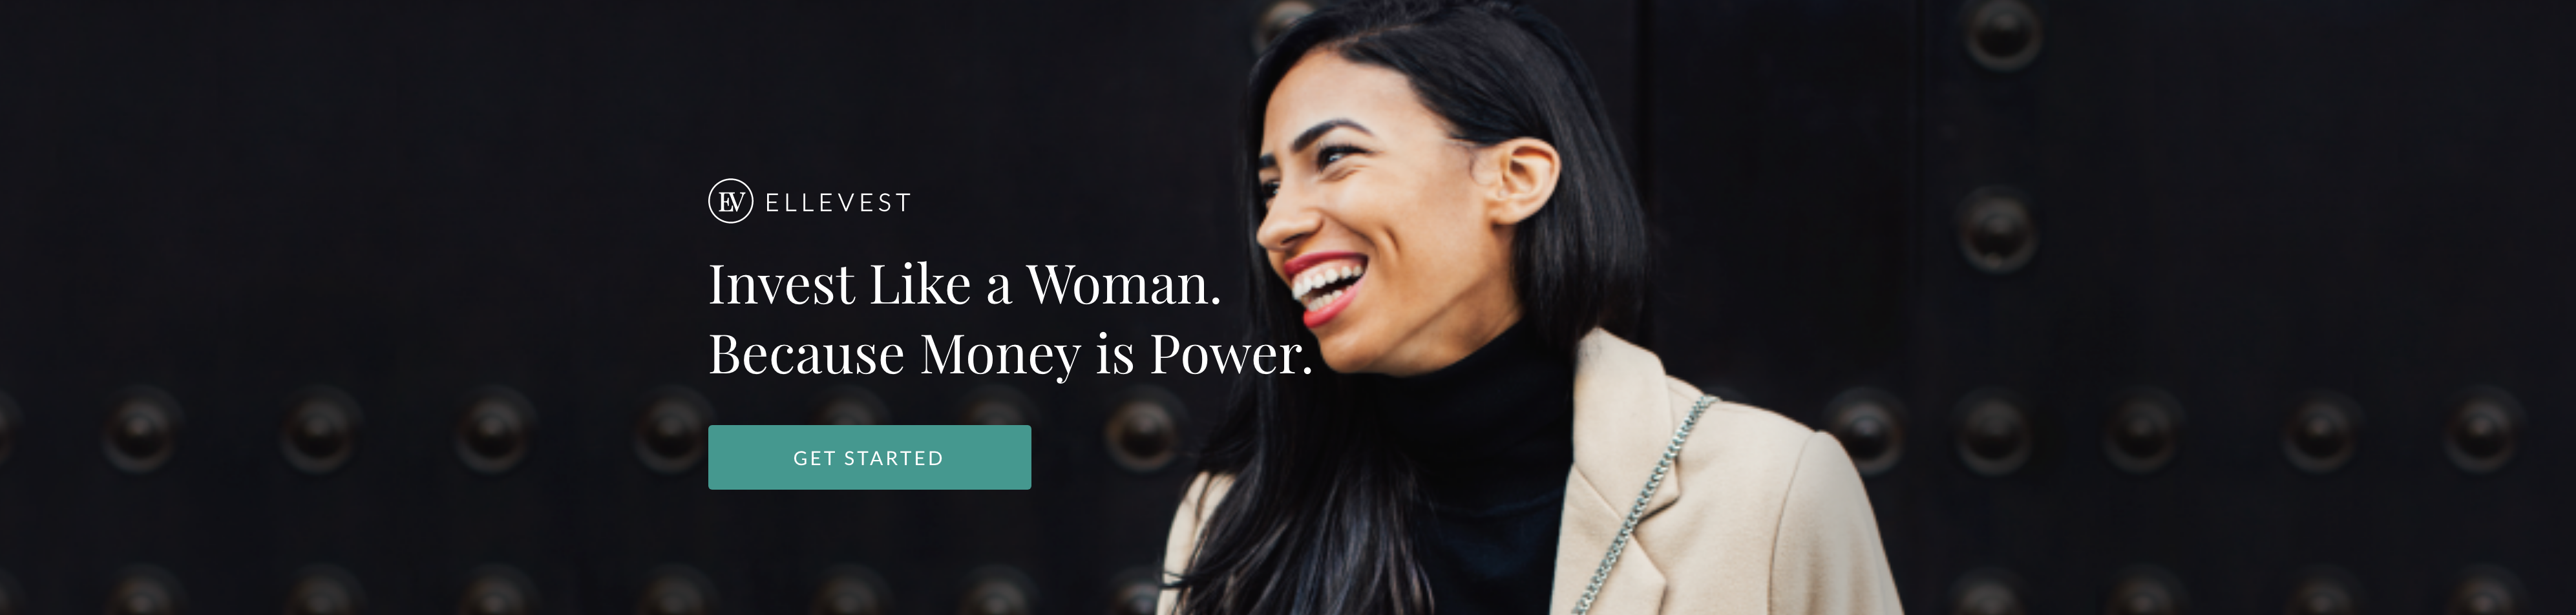 Ellevest Invest Like A Woman